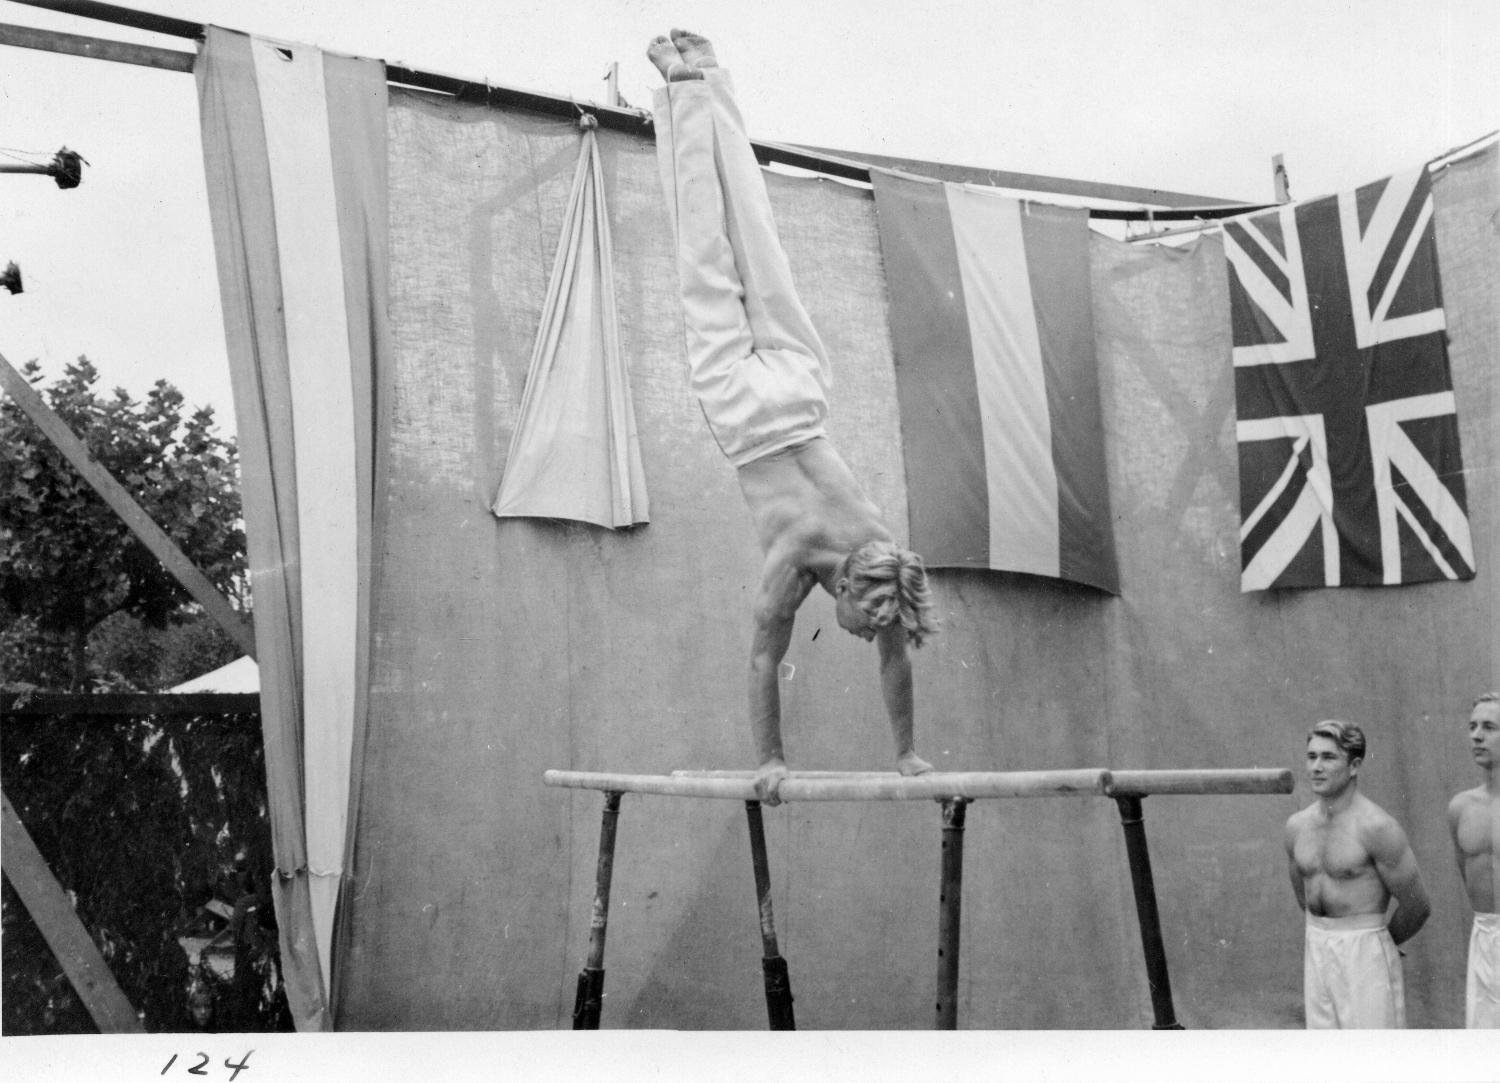 Acrobatic performance in midway carnival sideshow, 1940. Item CVA 180-0799.